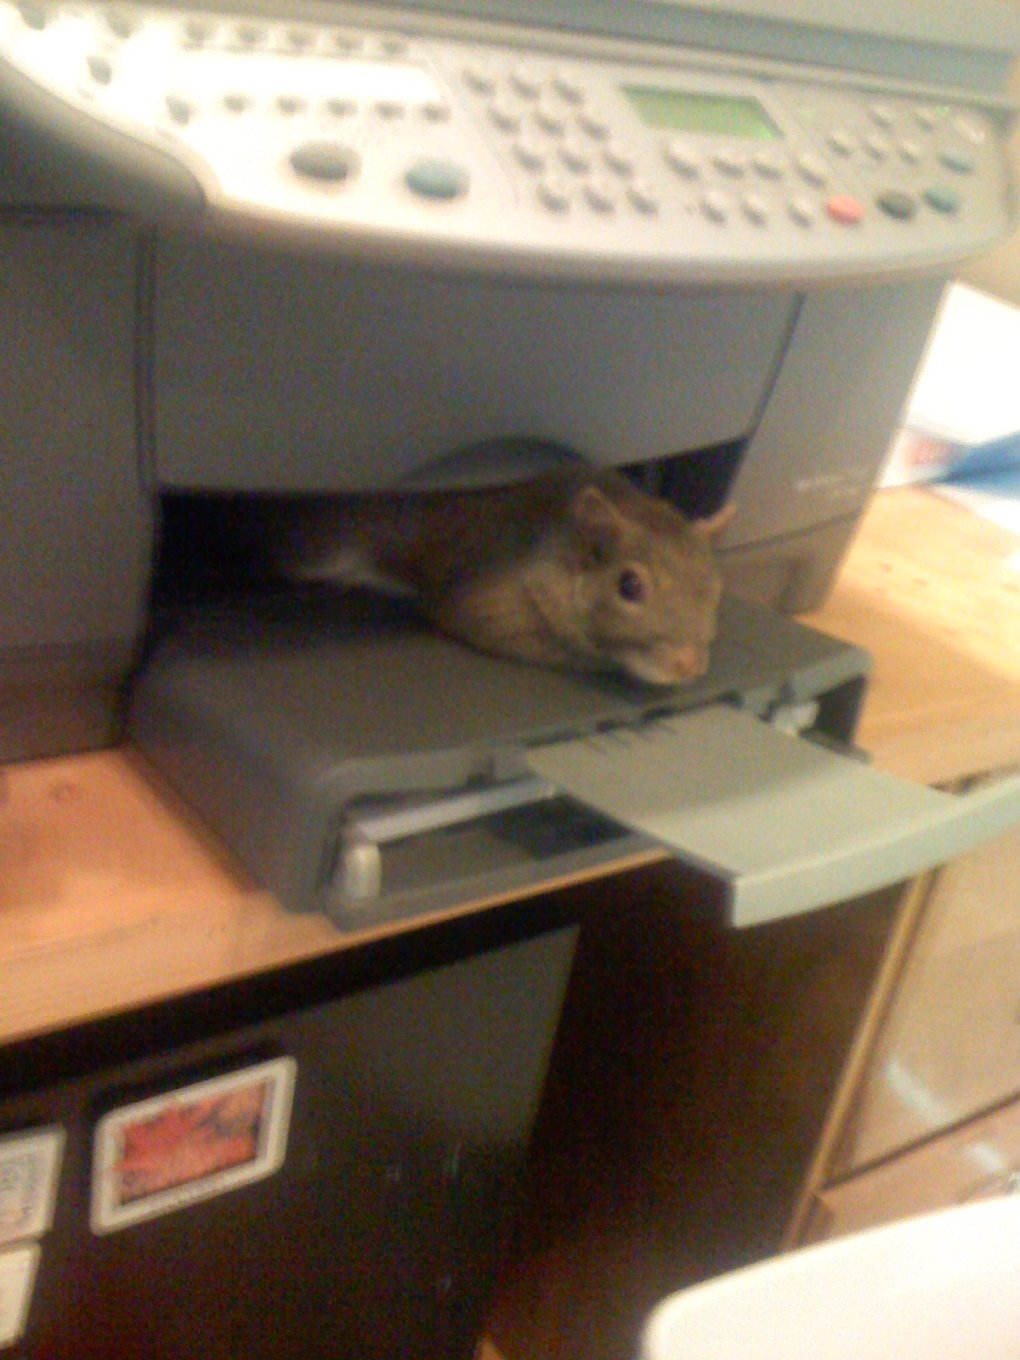 kdgjv - did anyone print a squirrel? [pic]